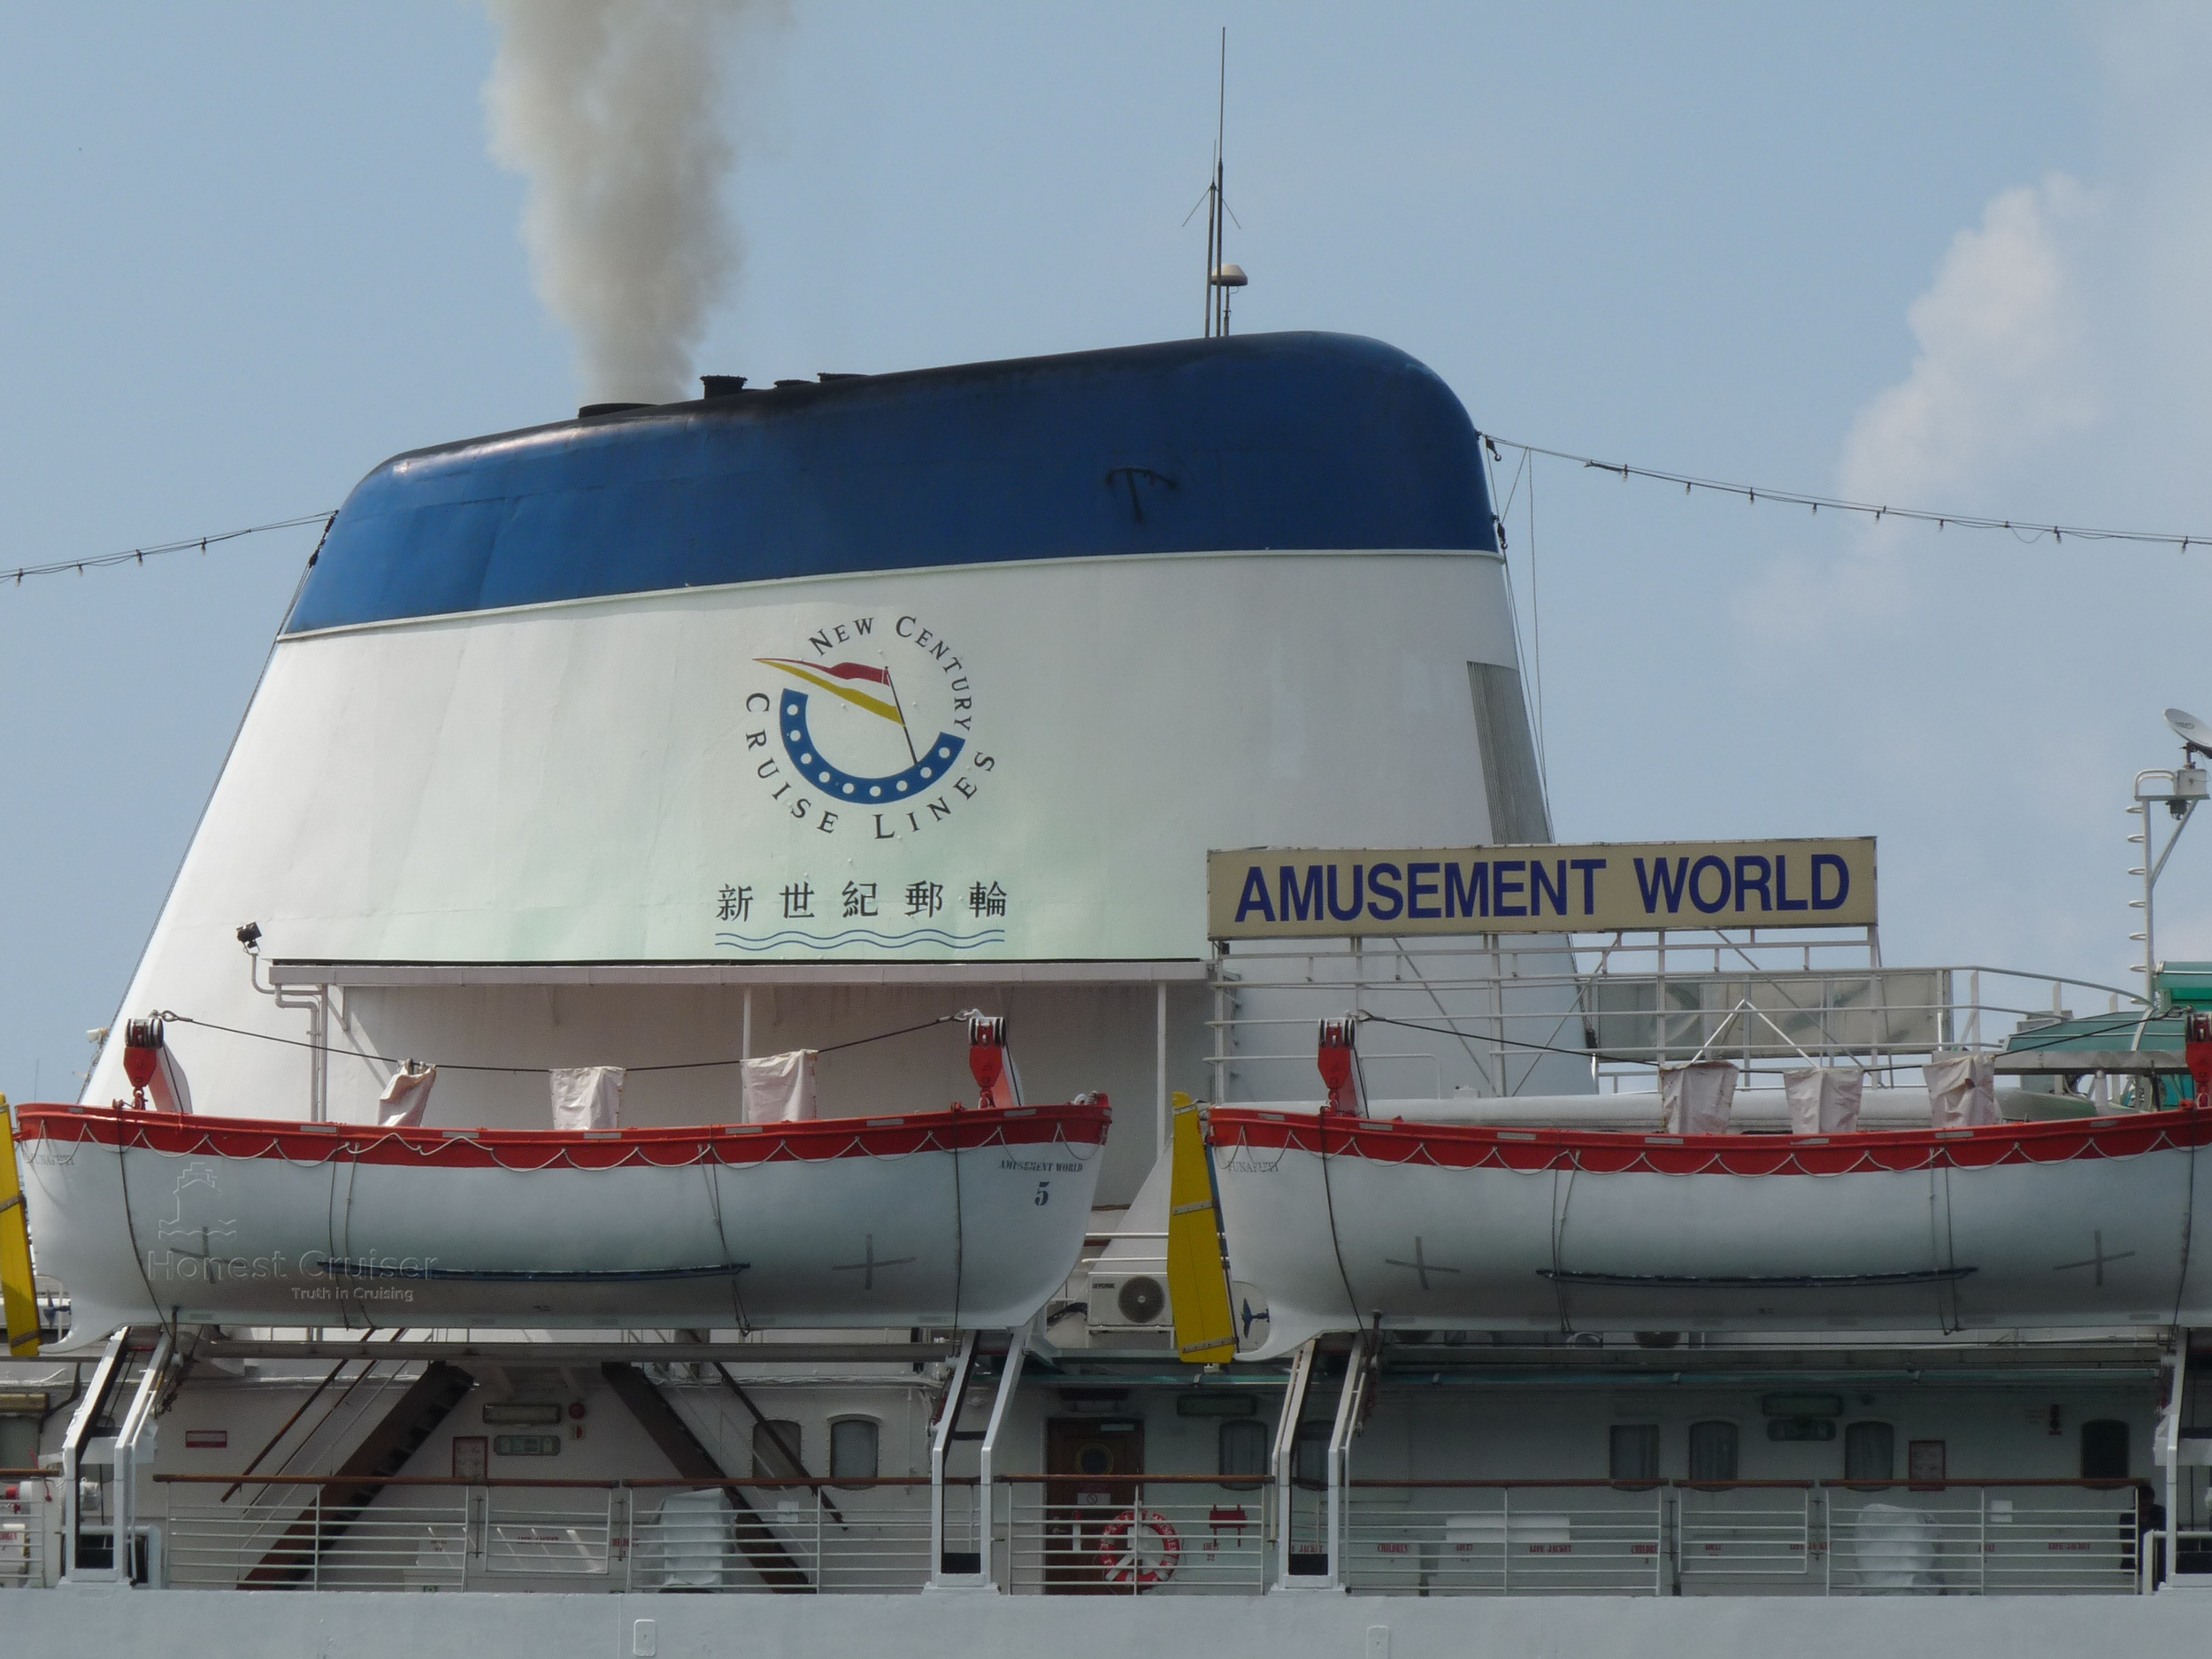 Amusement World's funnel in full use with New Century Cruise Lines logo prominently displayed.